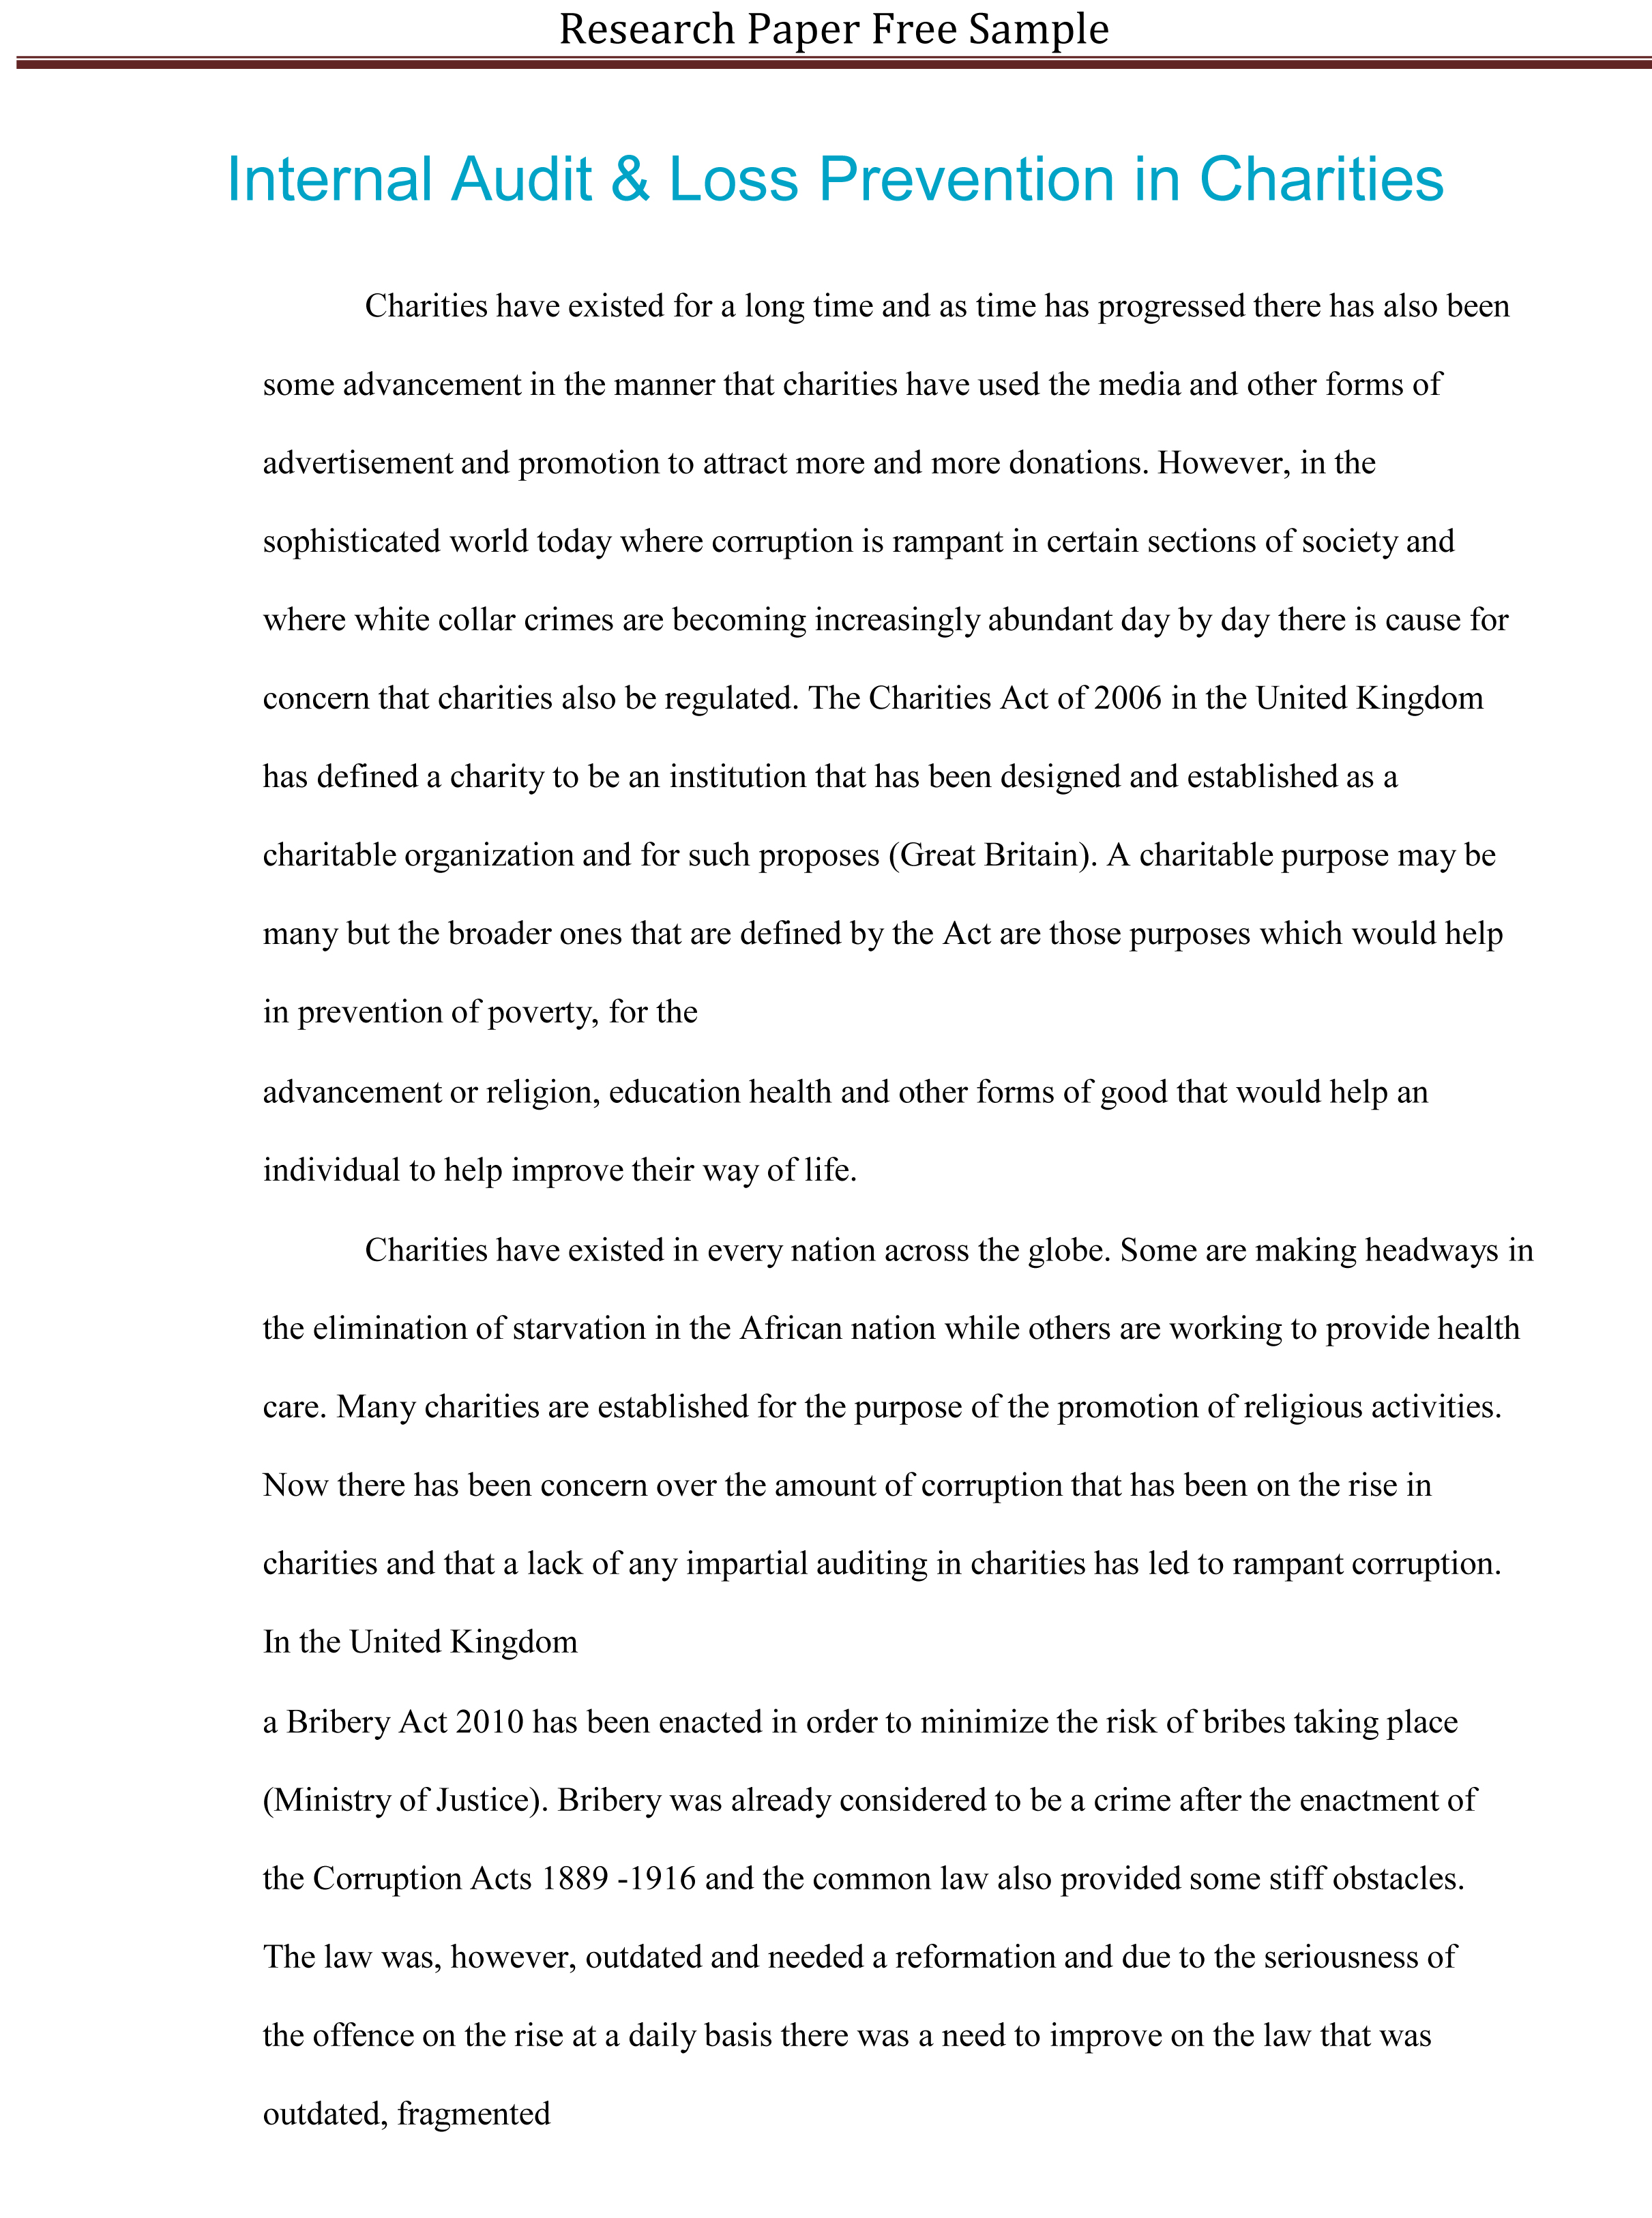 007 Research Paper Sample Essays Top Papers Terrorism Writer Full